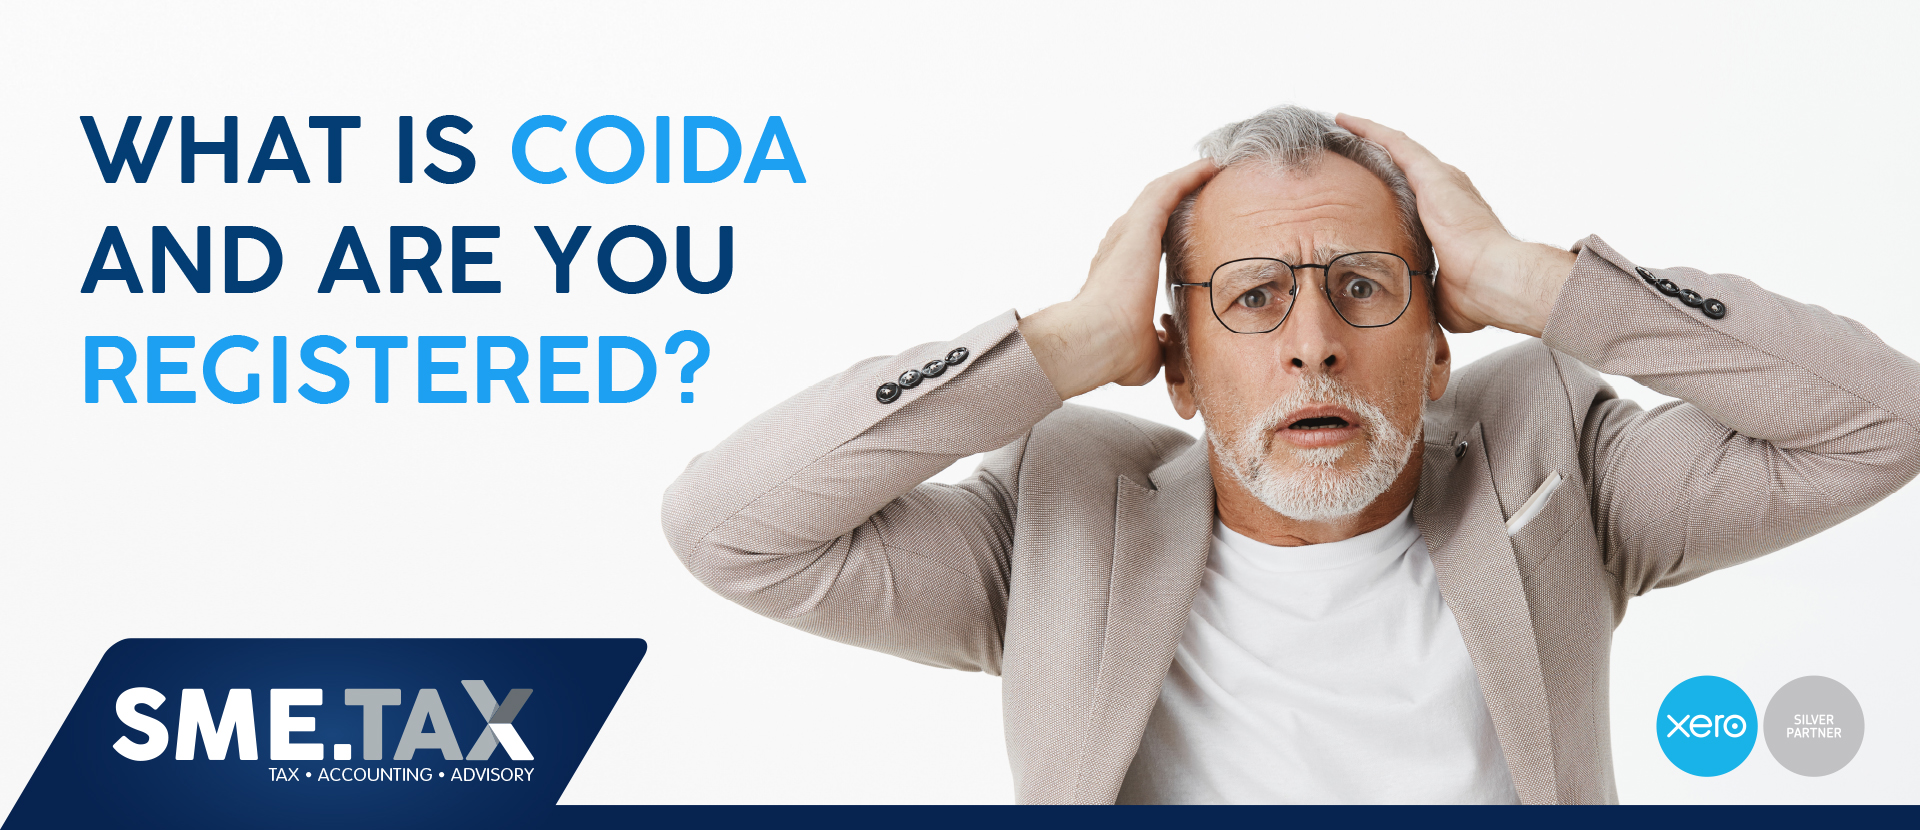 COIDA – Compensation for Occupational Injuries and Diseases Act - What is it? 2